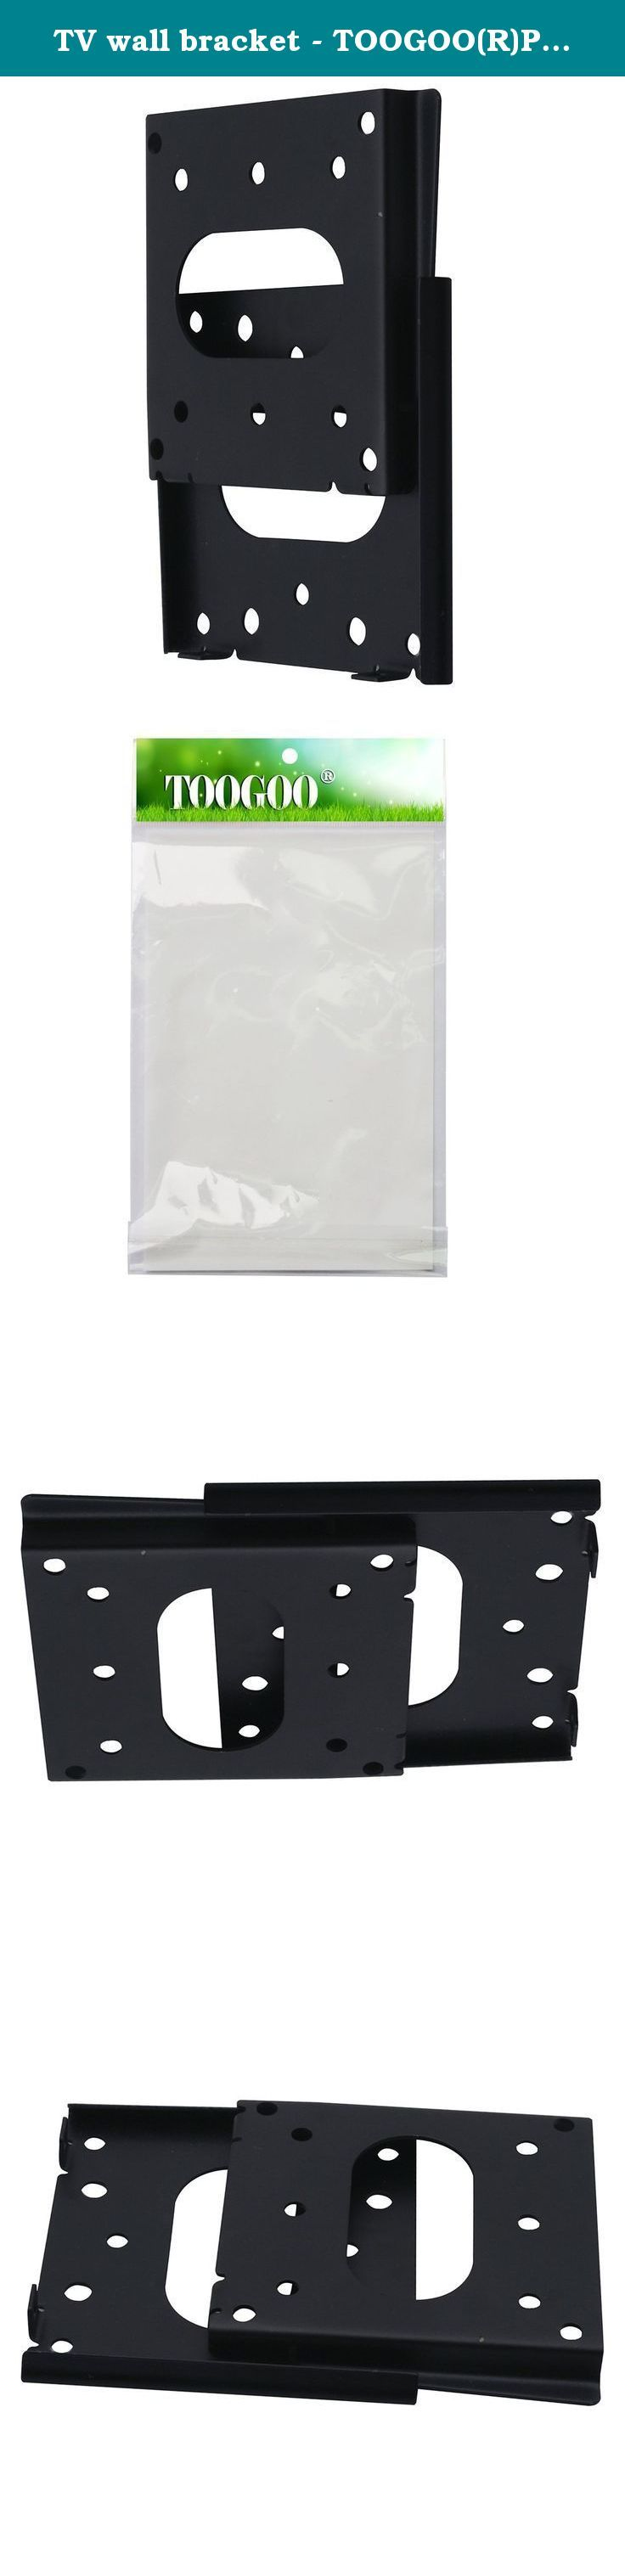 "TV wall bracket - TOOGOO(R)Plsama Ultra Slim Tilt Swivel TV wall mount bracket for 10-70 inch VESA 50-400mm£¨18 Ultra Slim 10""-24"" £. * TOOGOO is a registered trademark. ONLY Authorized seller of TOOGOO can sell under TOOGOO listings. Our products will enhance your experience to unparalleled inspiration. TOOGOO(R)Plsama Ultra Slim Tilt Swivel TV wall mount bracket for 10-70 inch VESA 50-400mm£¨18 Ultra Slim 10""-24"" £© Max Fitting Hole Distance(W x H): 75x75mm;100x100mm Package Include: 1…"